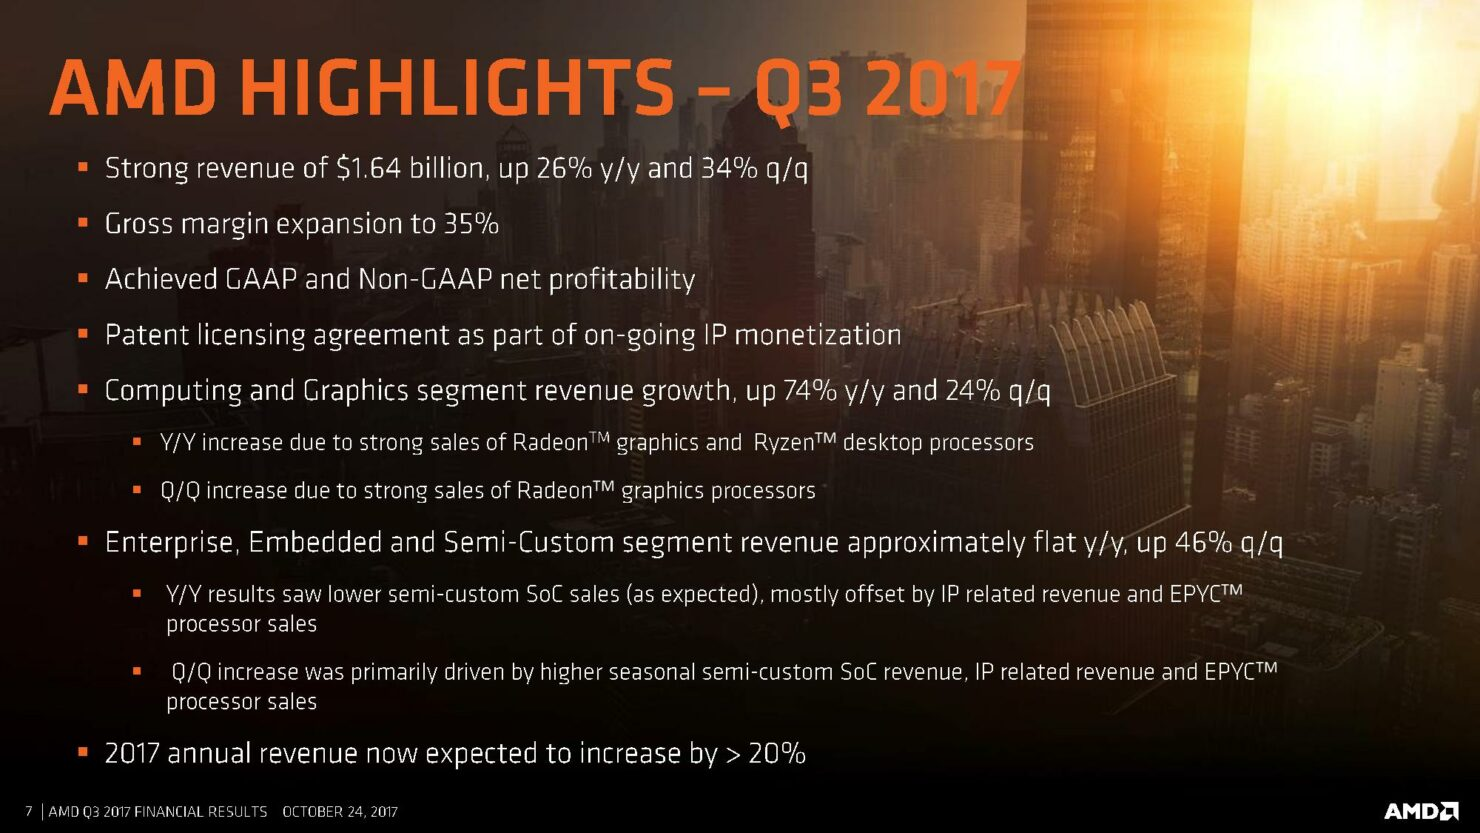 q3-17-amd-cfo-commentary-slides-page-007